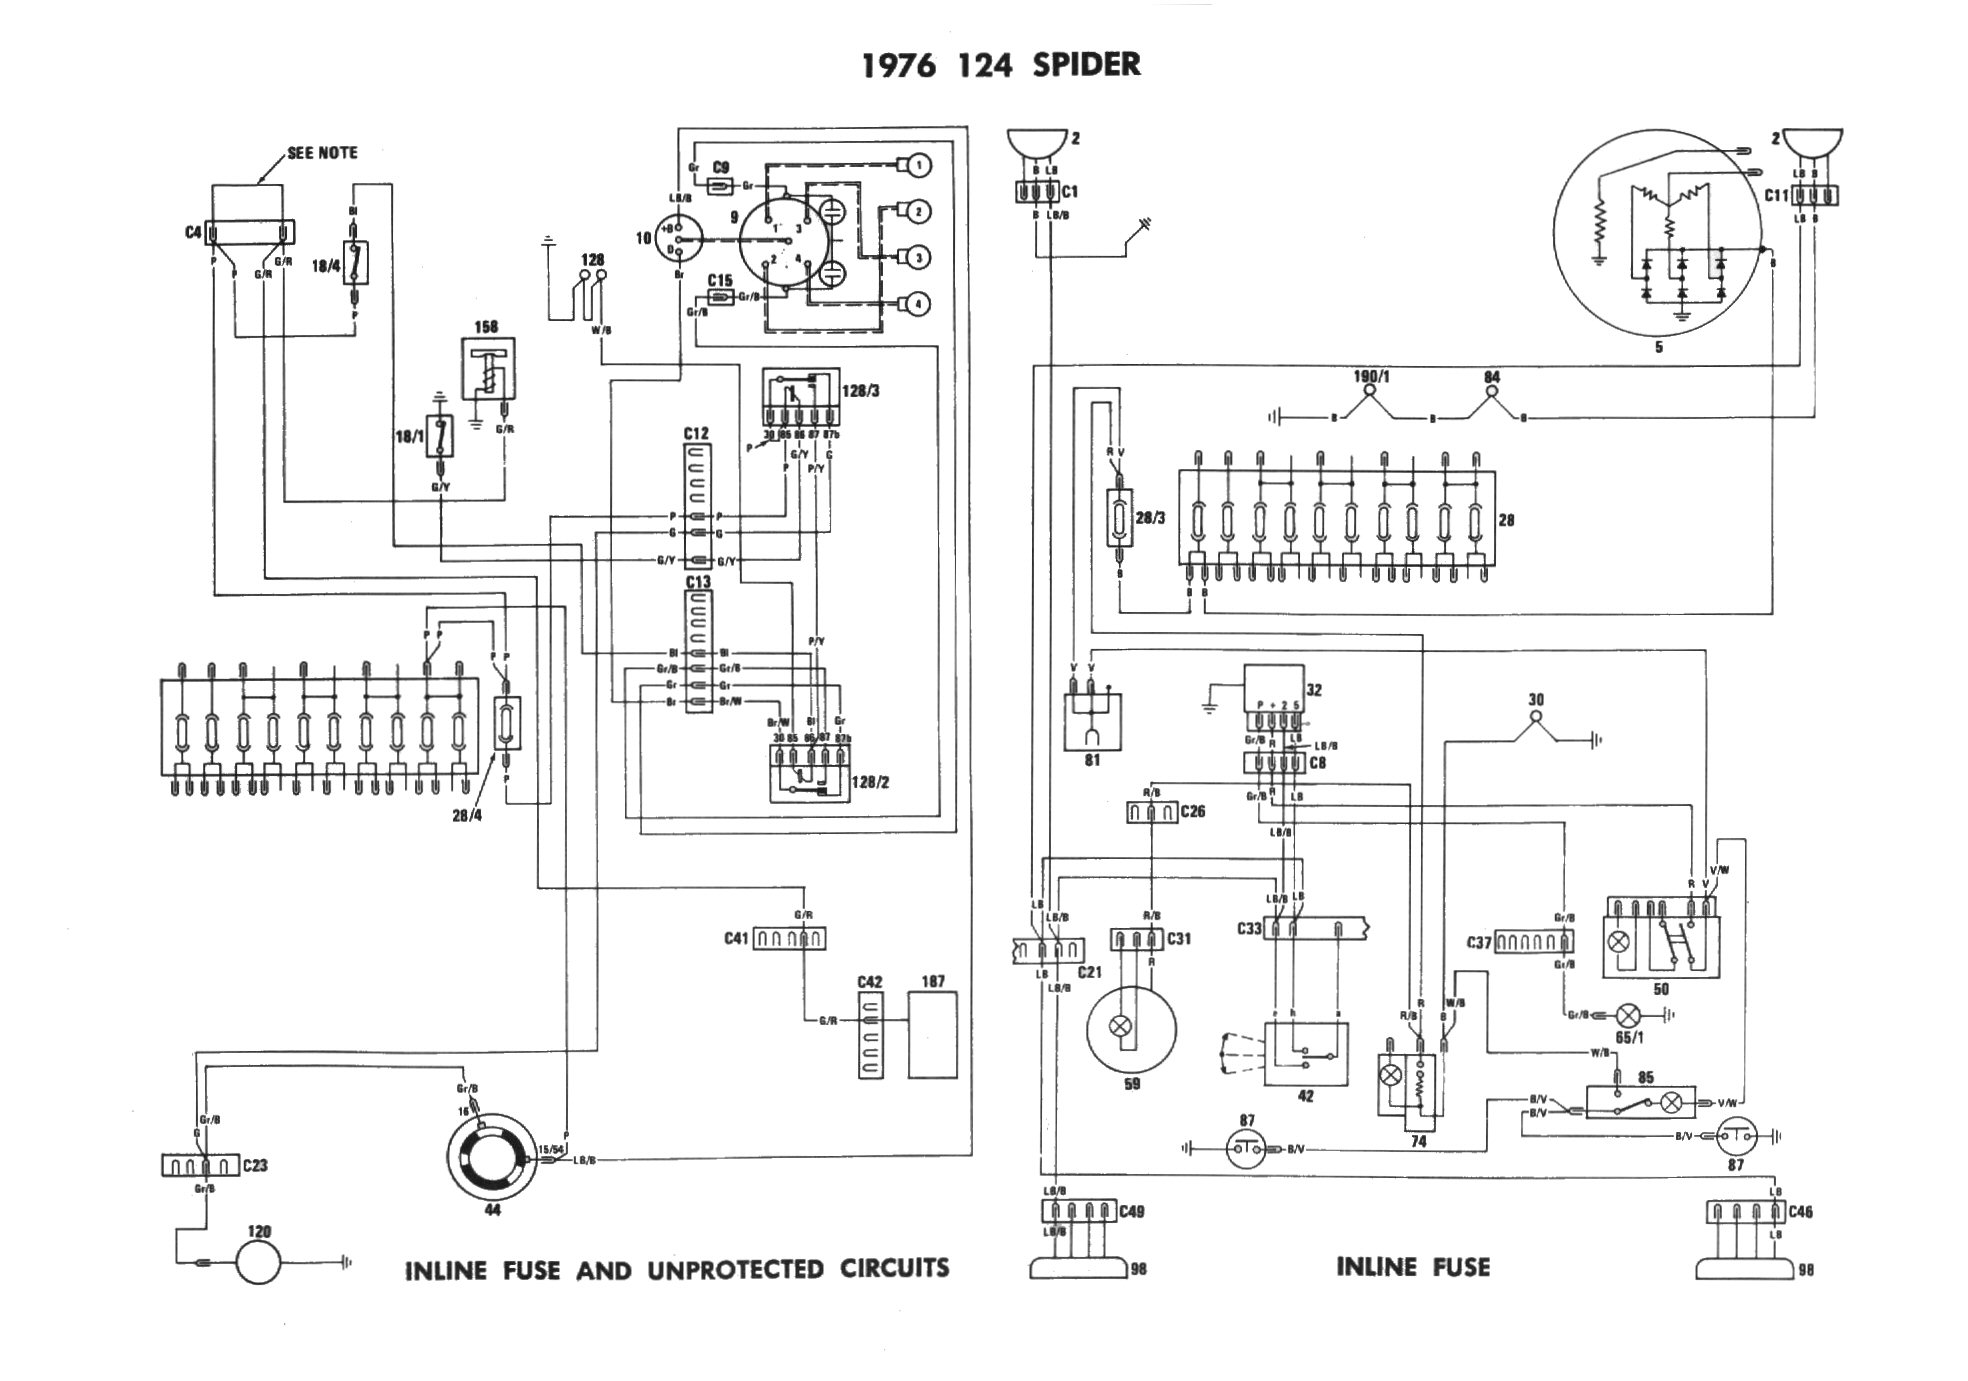 7 1976 corvette wiring diagram efcaviation com 1979 corvette wiring diagram download at aneh.co